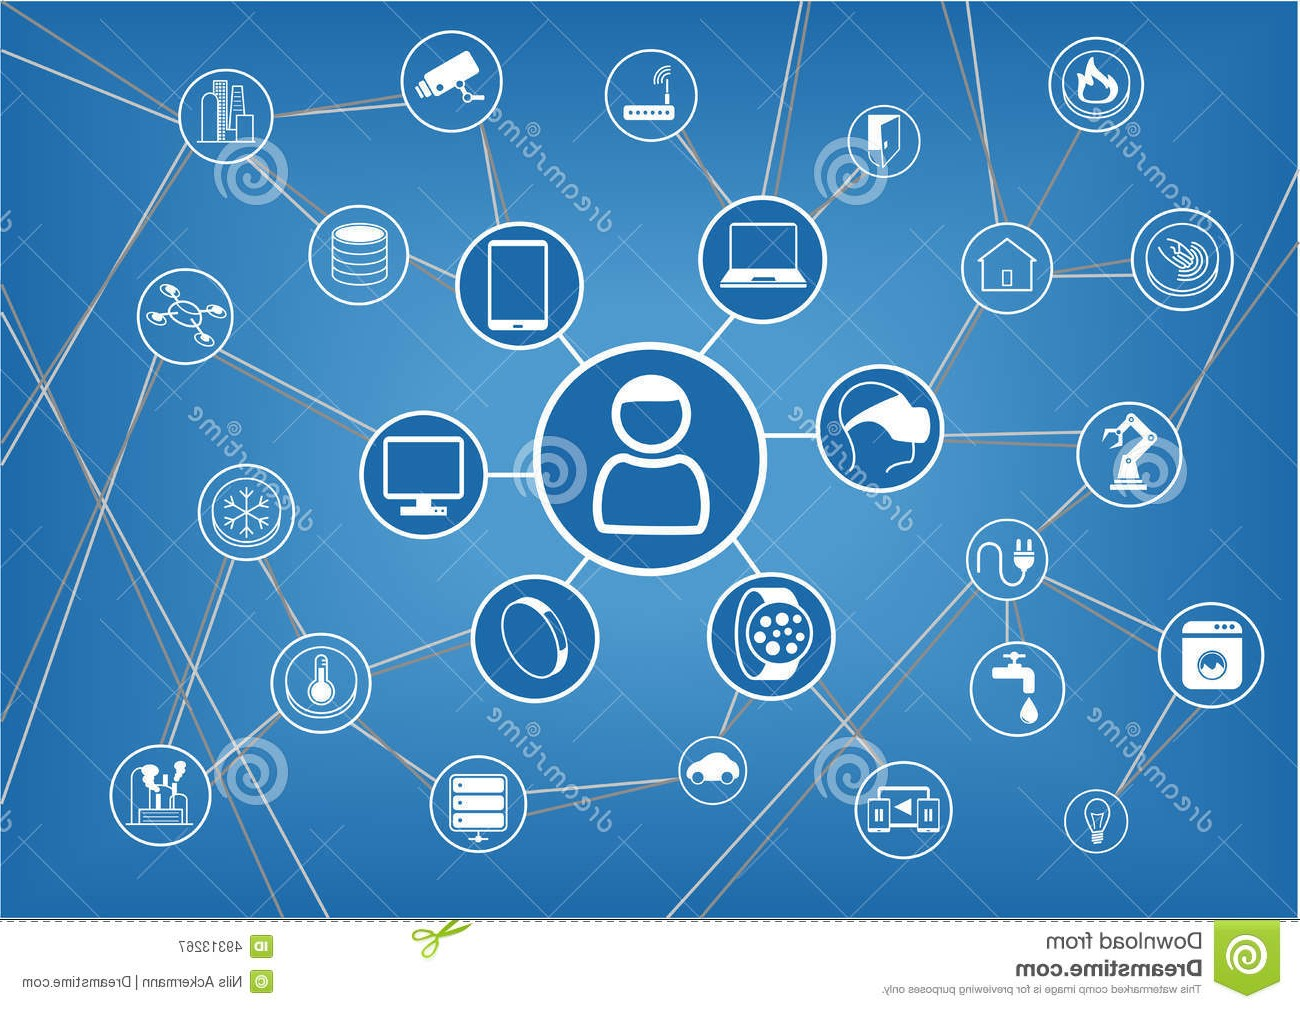 http://www.dreamstime.com/royalty-free-stock-photography-internet-things-represented-consumer-connected-devices-as-illustration-objects-smart-phone-smart-thermostat-tablet-image49313267